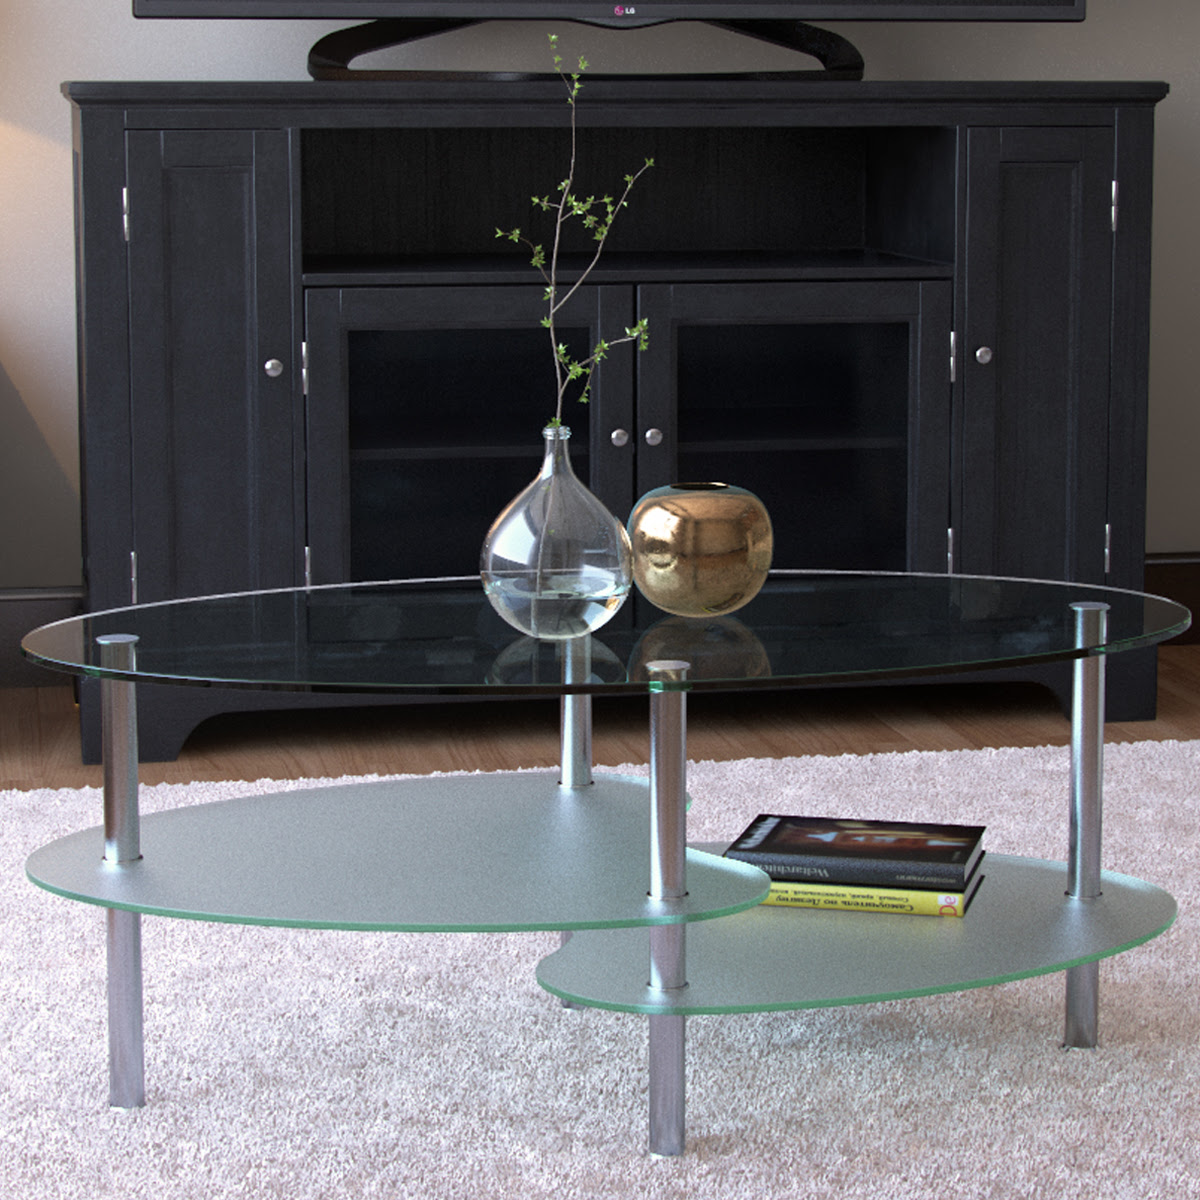 Fenton 38 Inch Oval Two Tier Glass Coffee Table